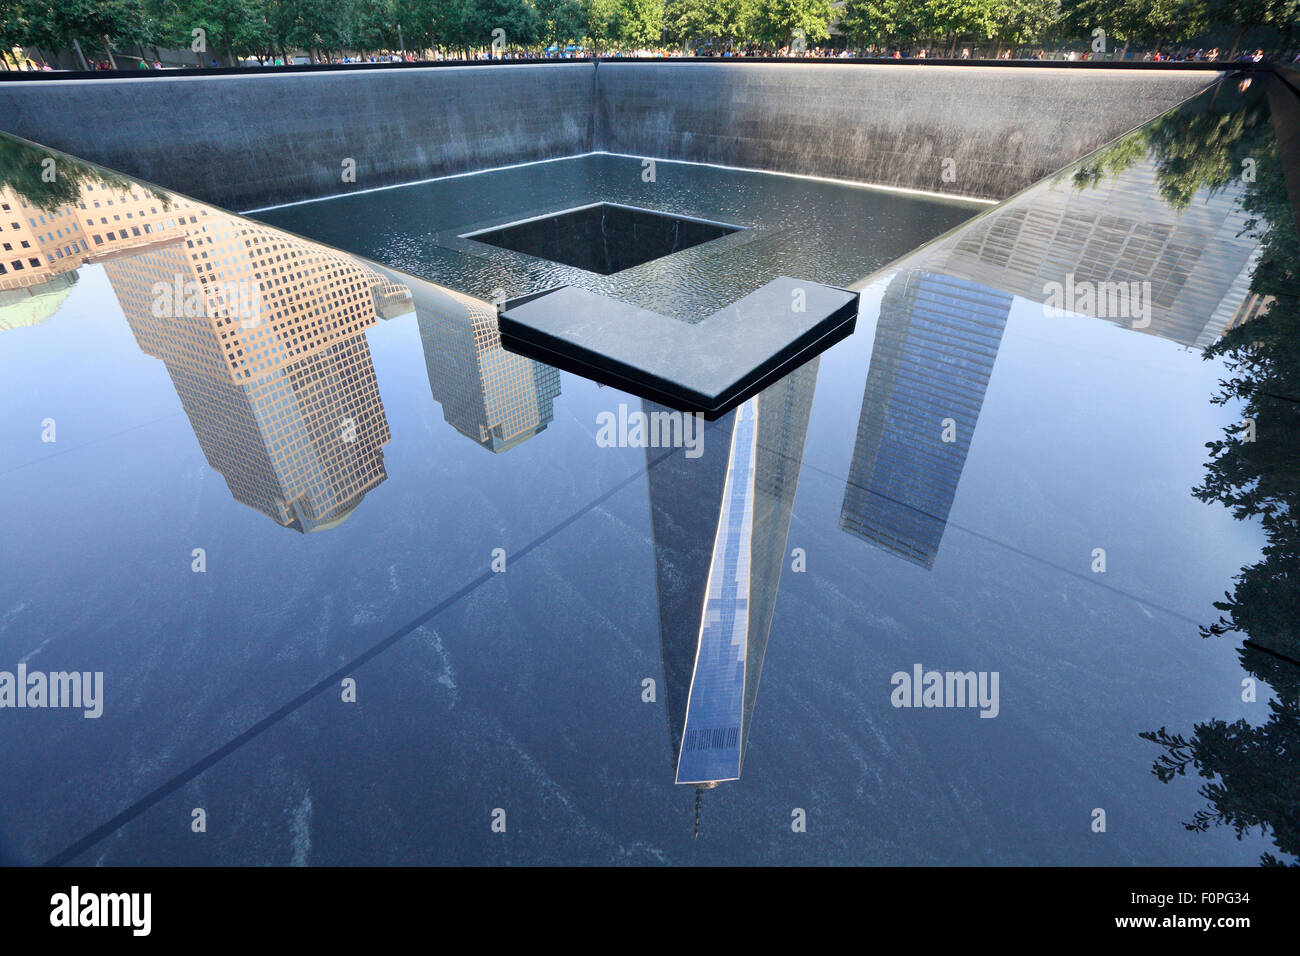 Memorial Fountain and reflections of One World Trade Center on foreground in New York City - Stock Image